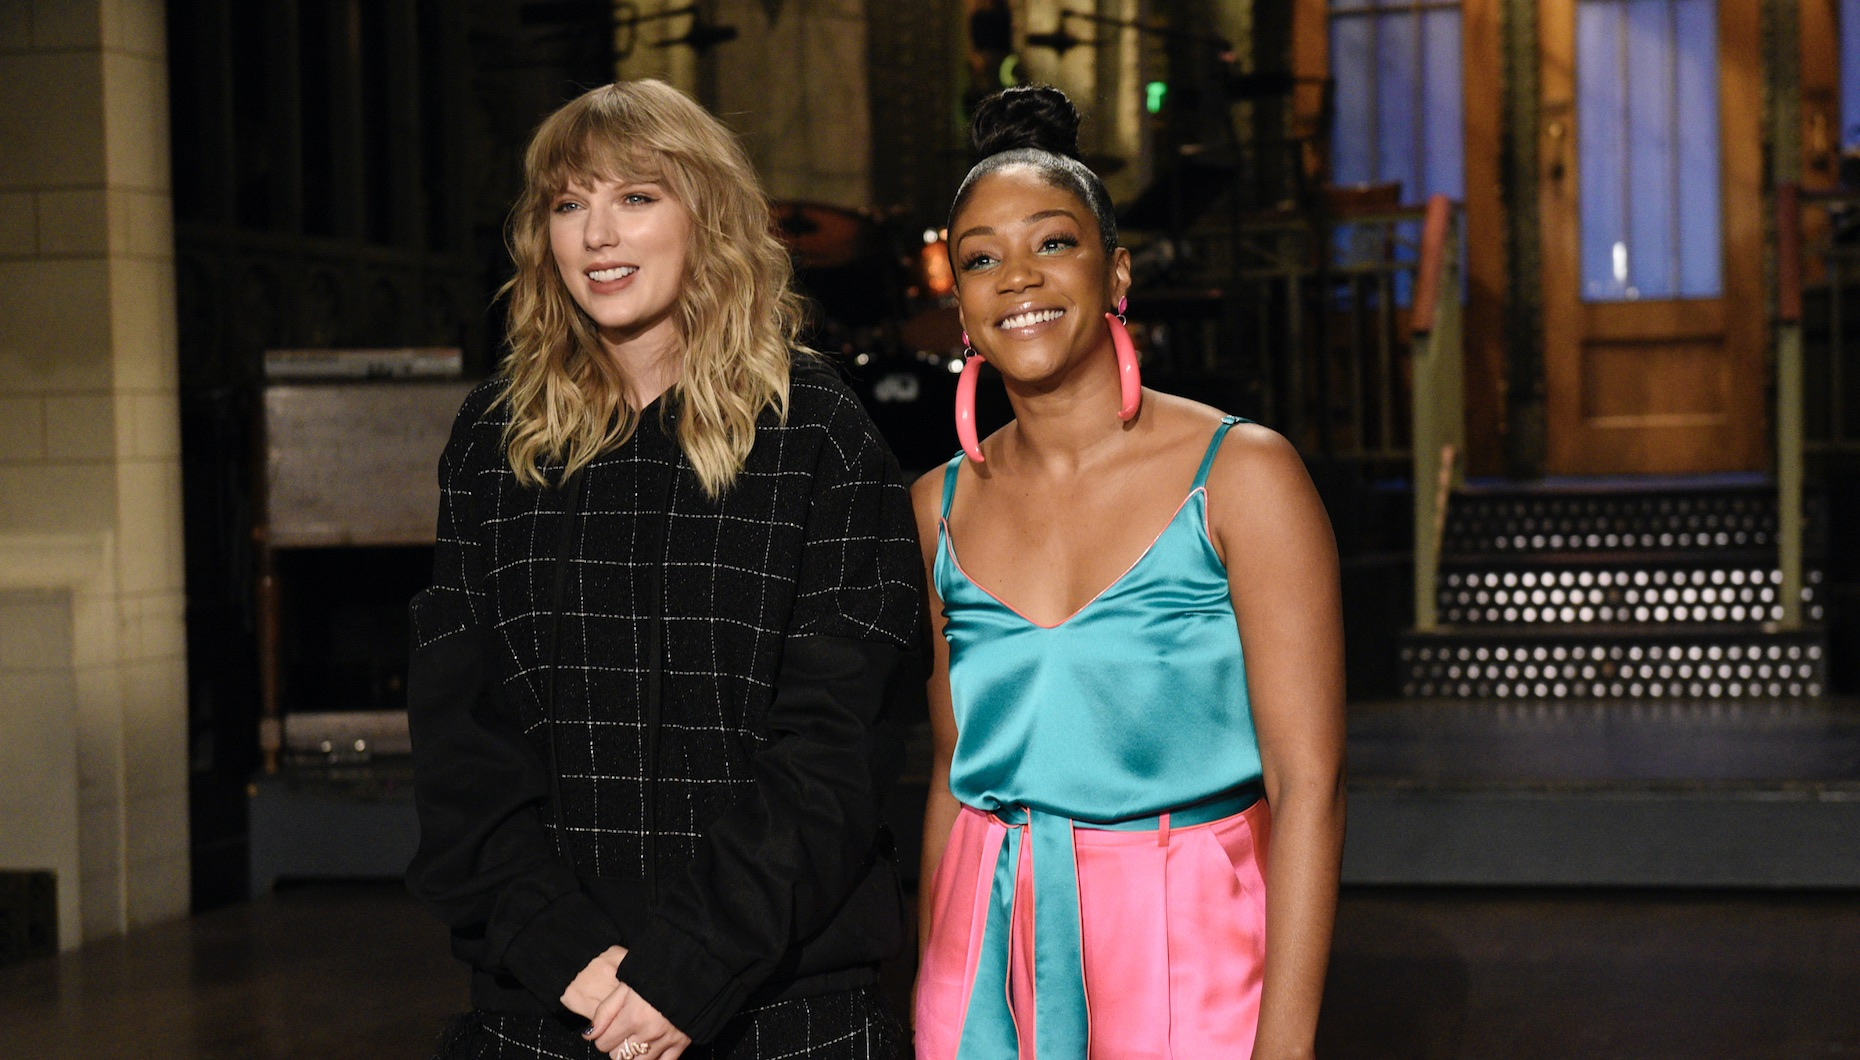 Taylor Swift once cooked Tiffany Haddish dinner, and it sounds damn delicious